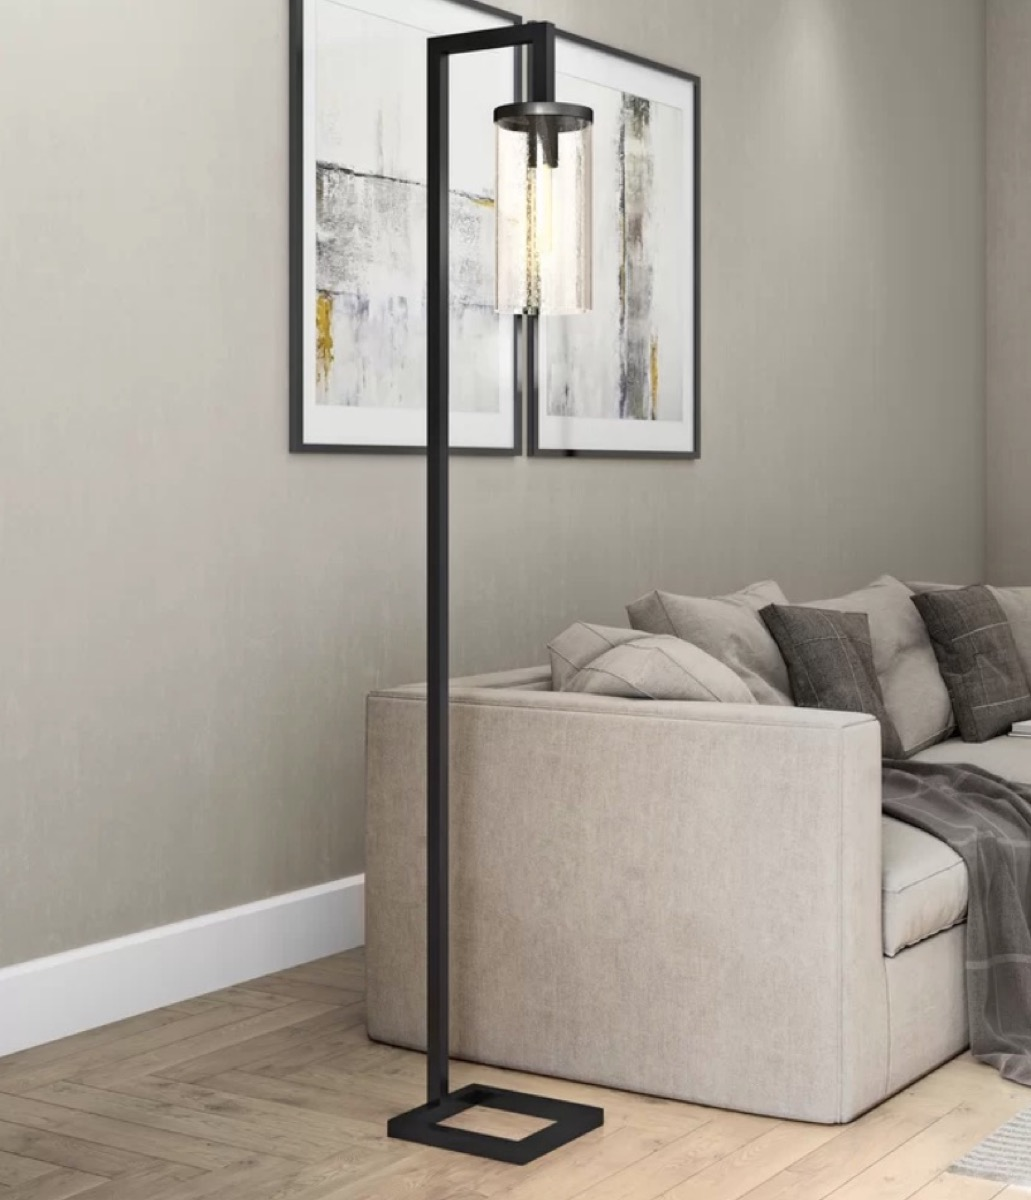 black floor lamp next to gray couch